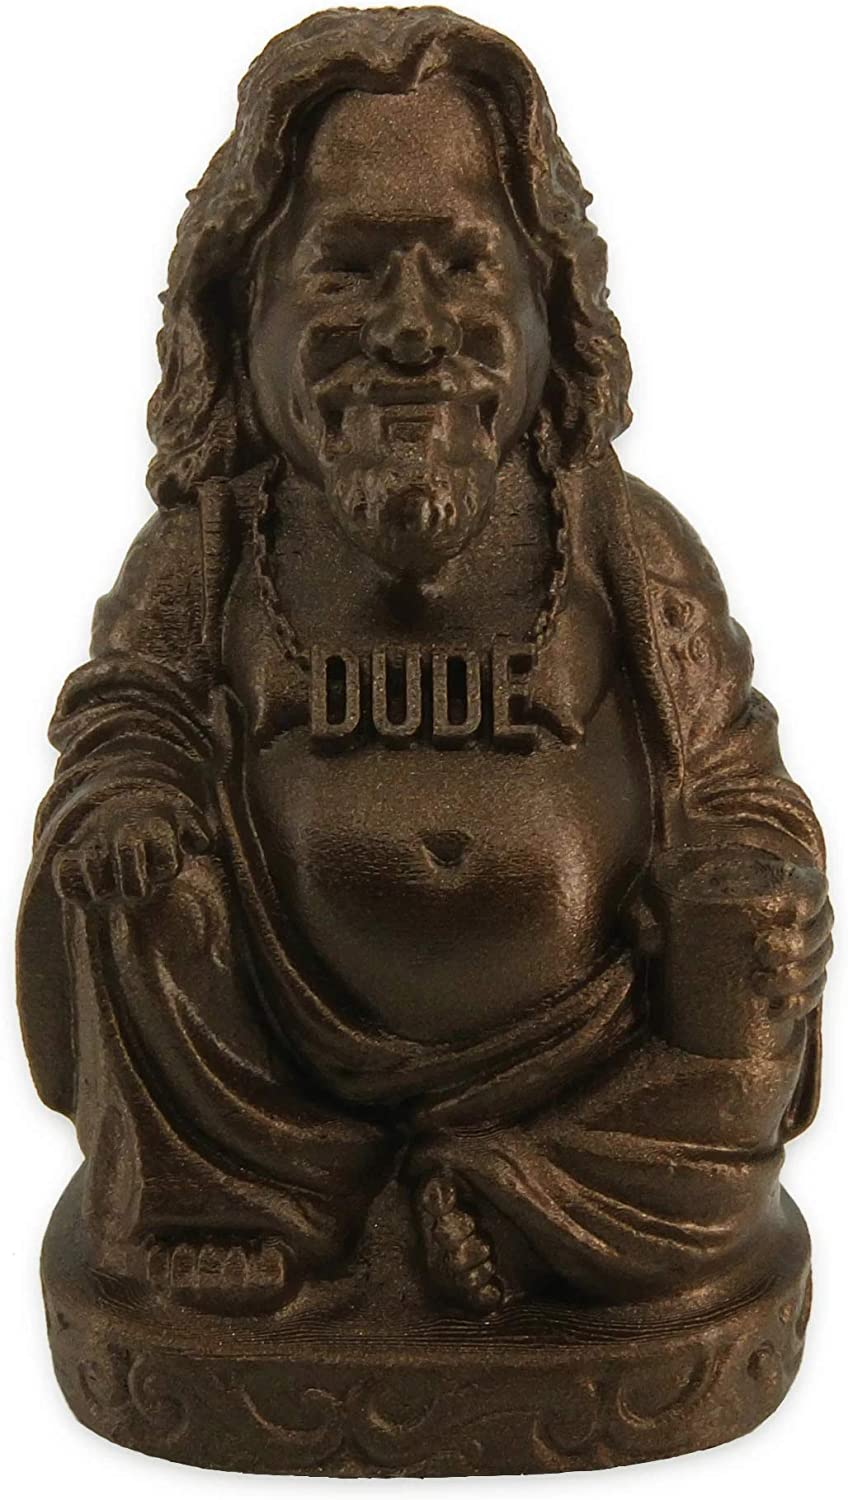 muckychris The Dude Buddha Big Max 51% OFF Lebowski Limited time for free shipping Metallic 6